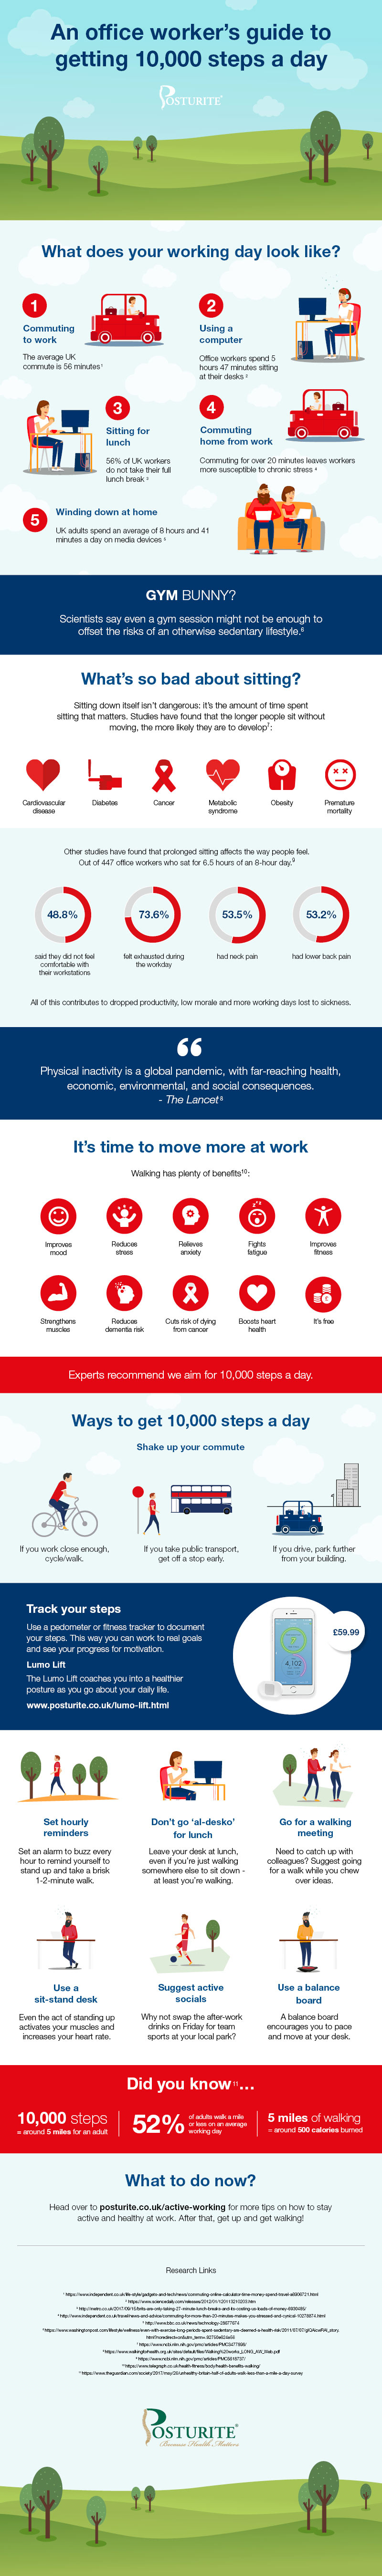 Download our 'An office worker's guide togetting 10,000 steps a day' infographic